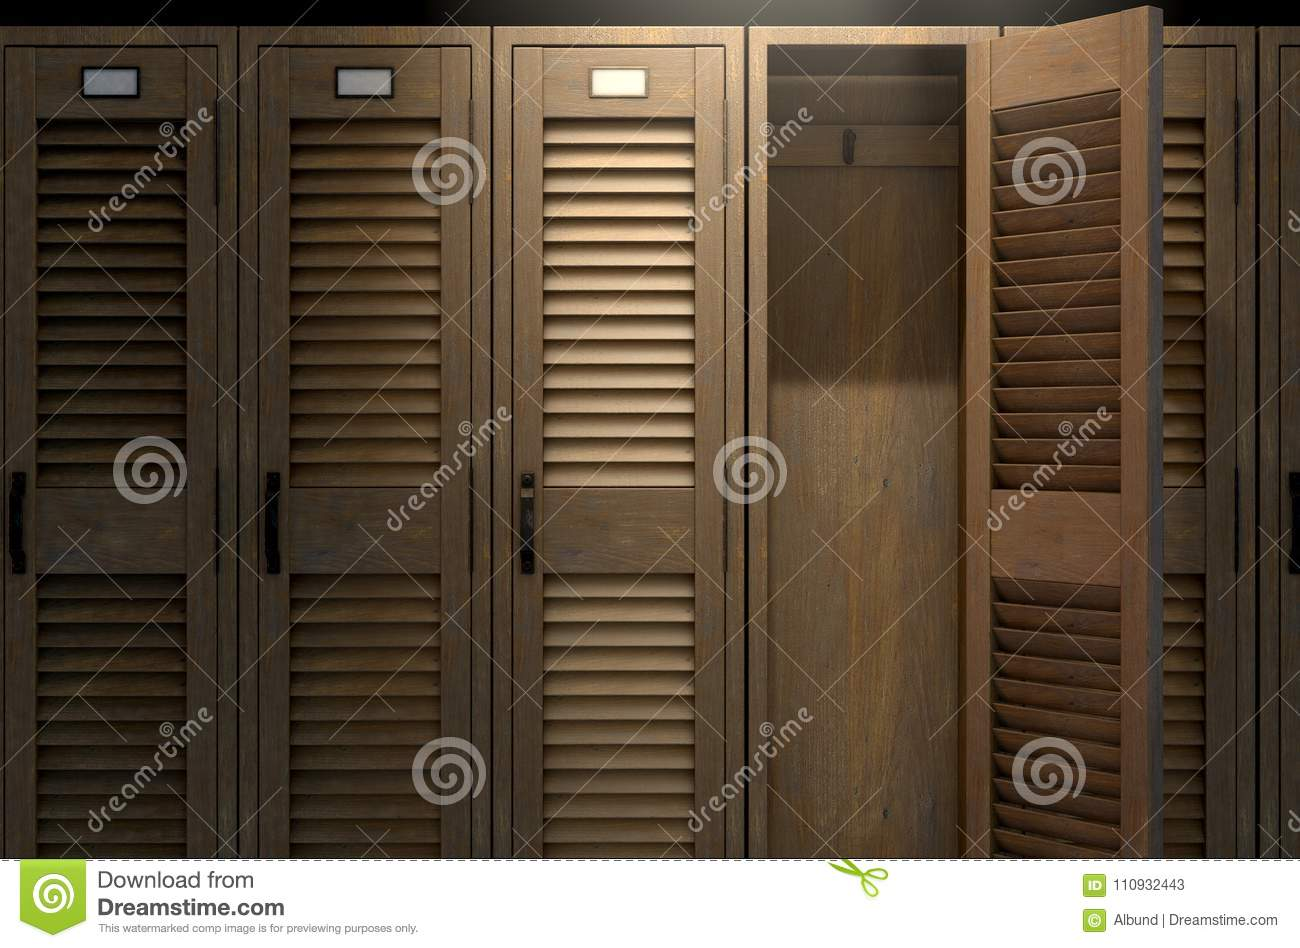 A Row Of Vintage Wooden Gym Lockers With One Open Door Revealing An Empty Interior